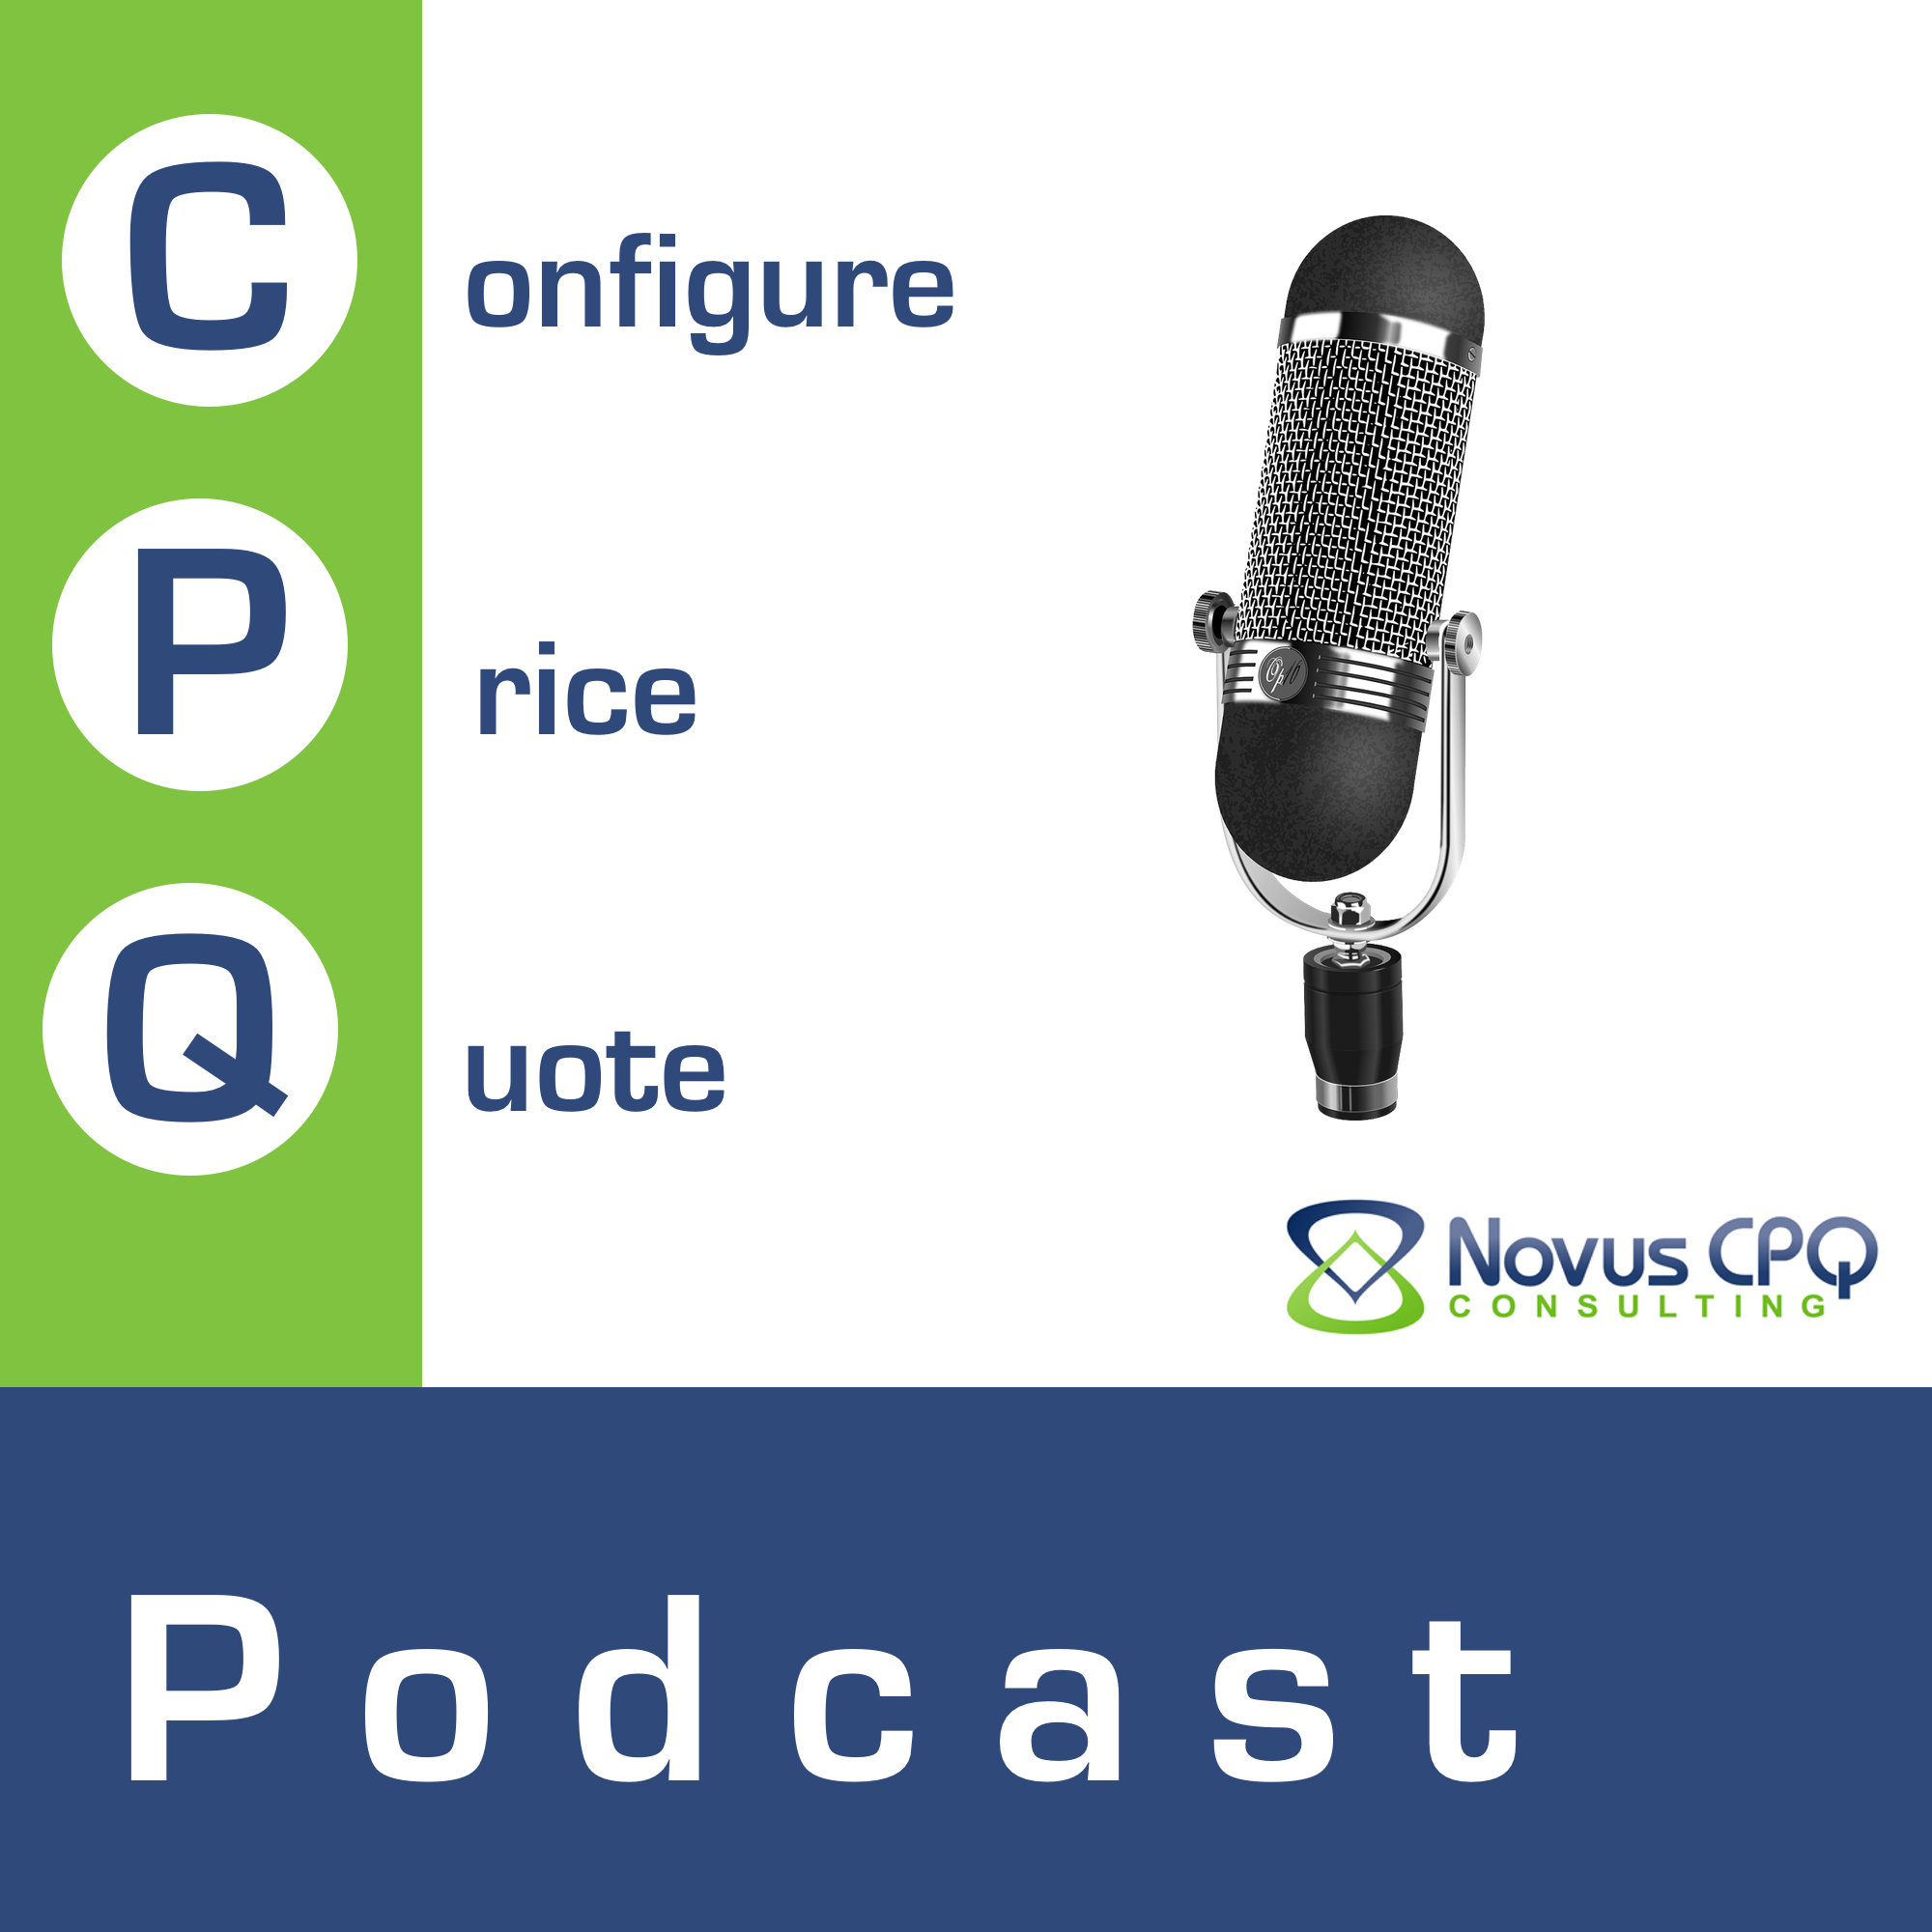 Interview with Ulf Harlou, CEO of CPC (Center for Product Customization ApS)